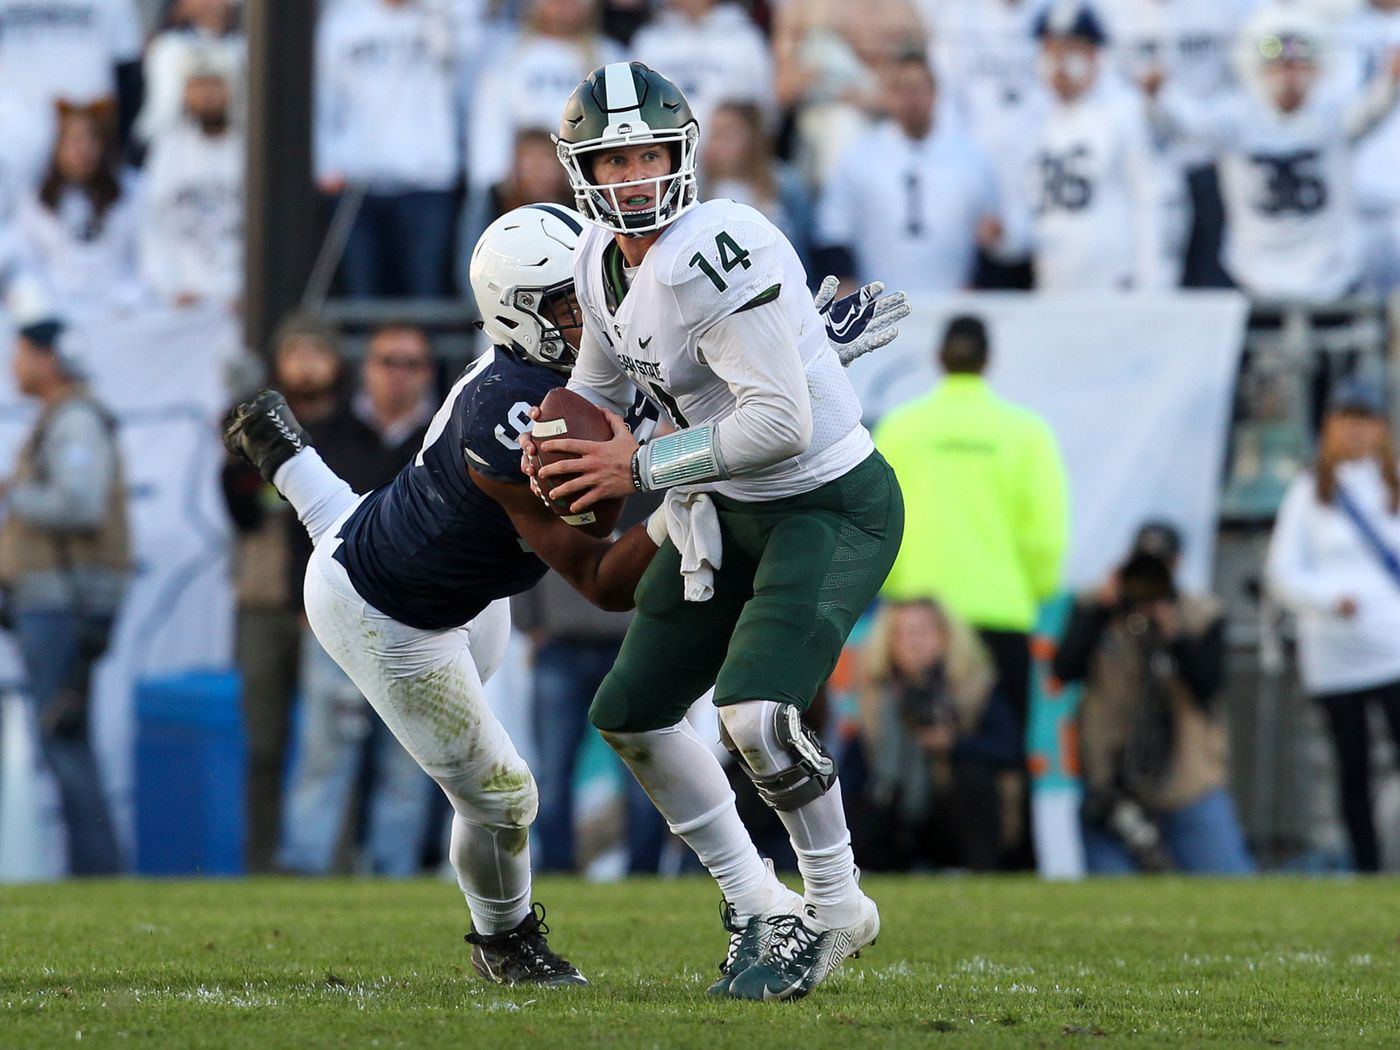 ef946ca72 Michigan State knocks Penn State out of the Playoff  3 takeaways -  SBNation.com